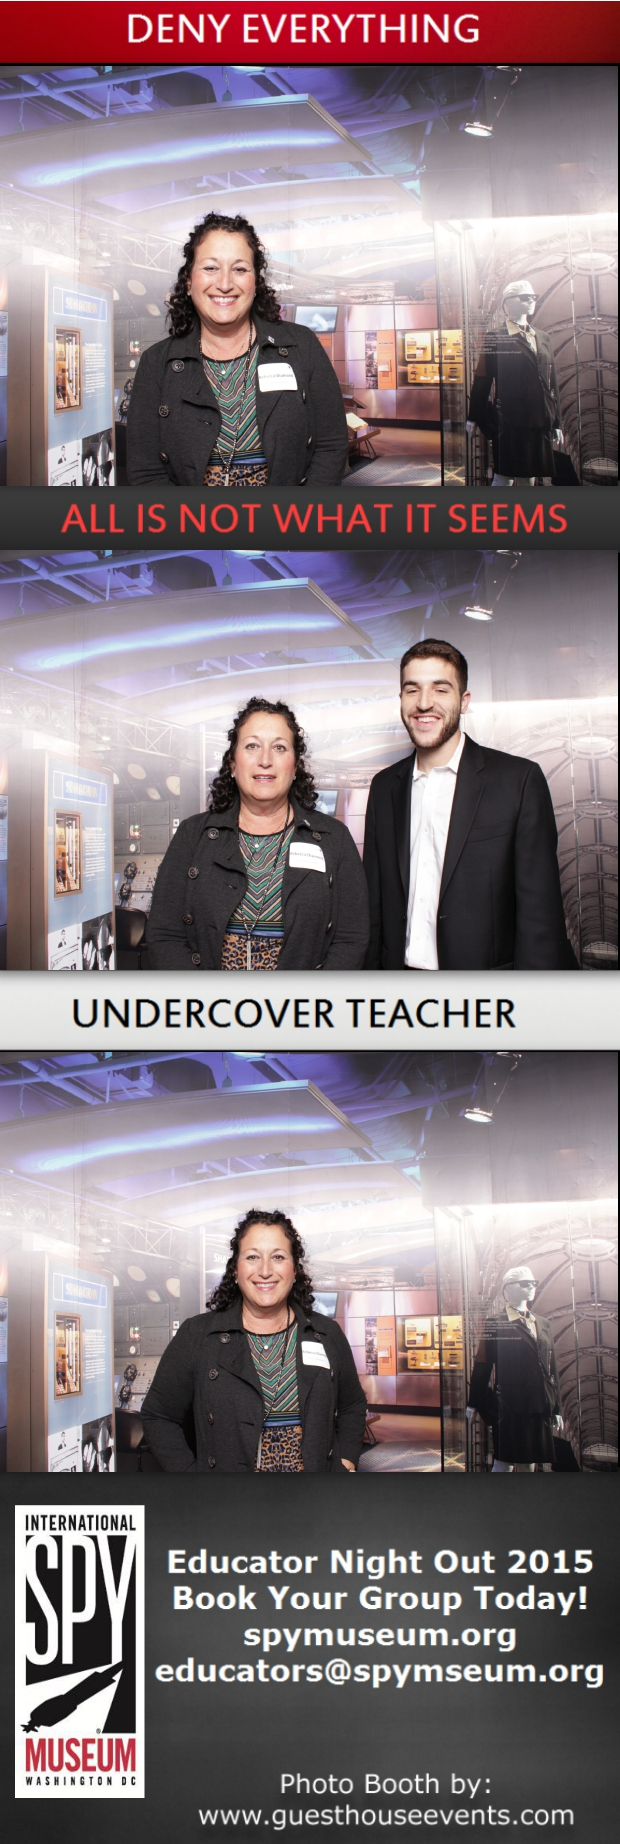 Guest House Events Photo Booth Spy Museum Educator Night Out (1).jpg